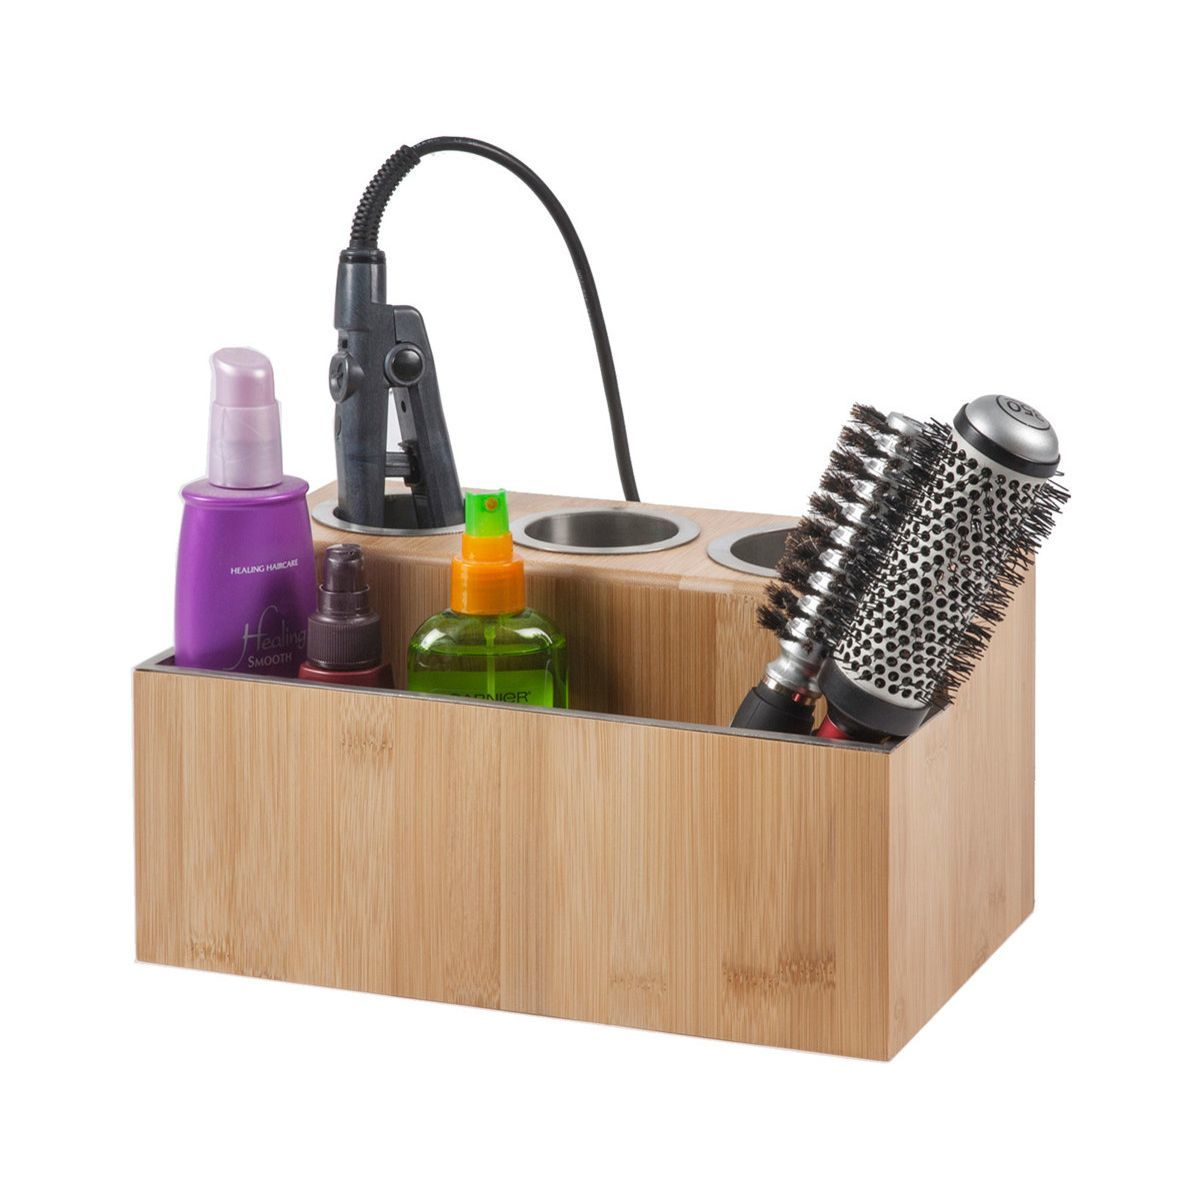 Bamboo organizer to store hair products and tools photo